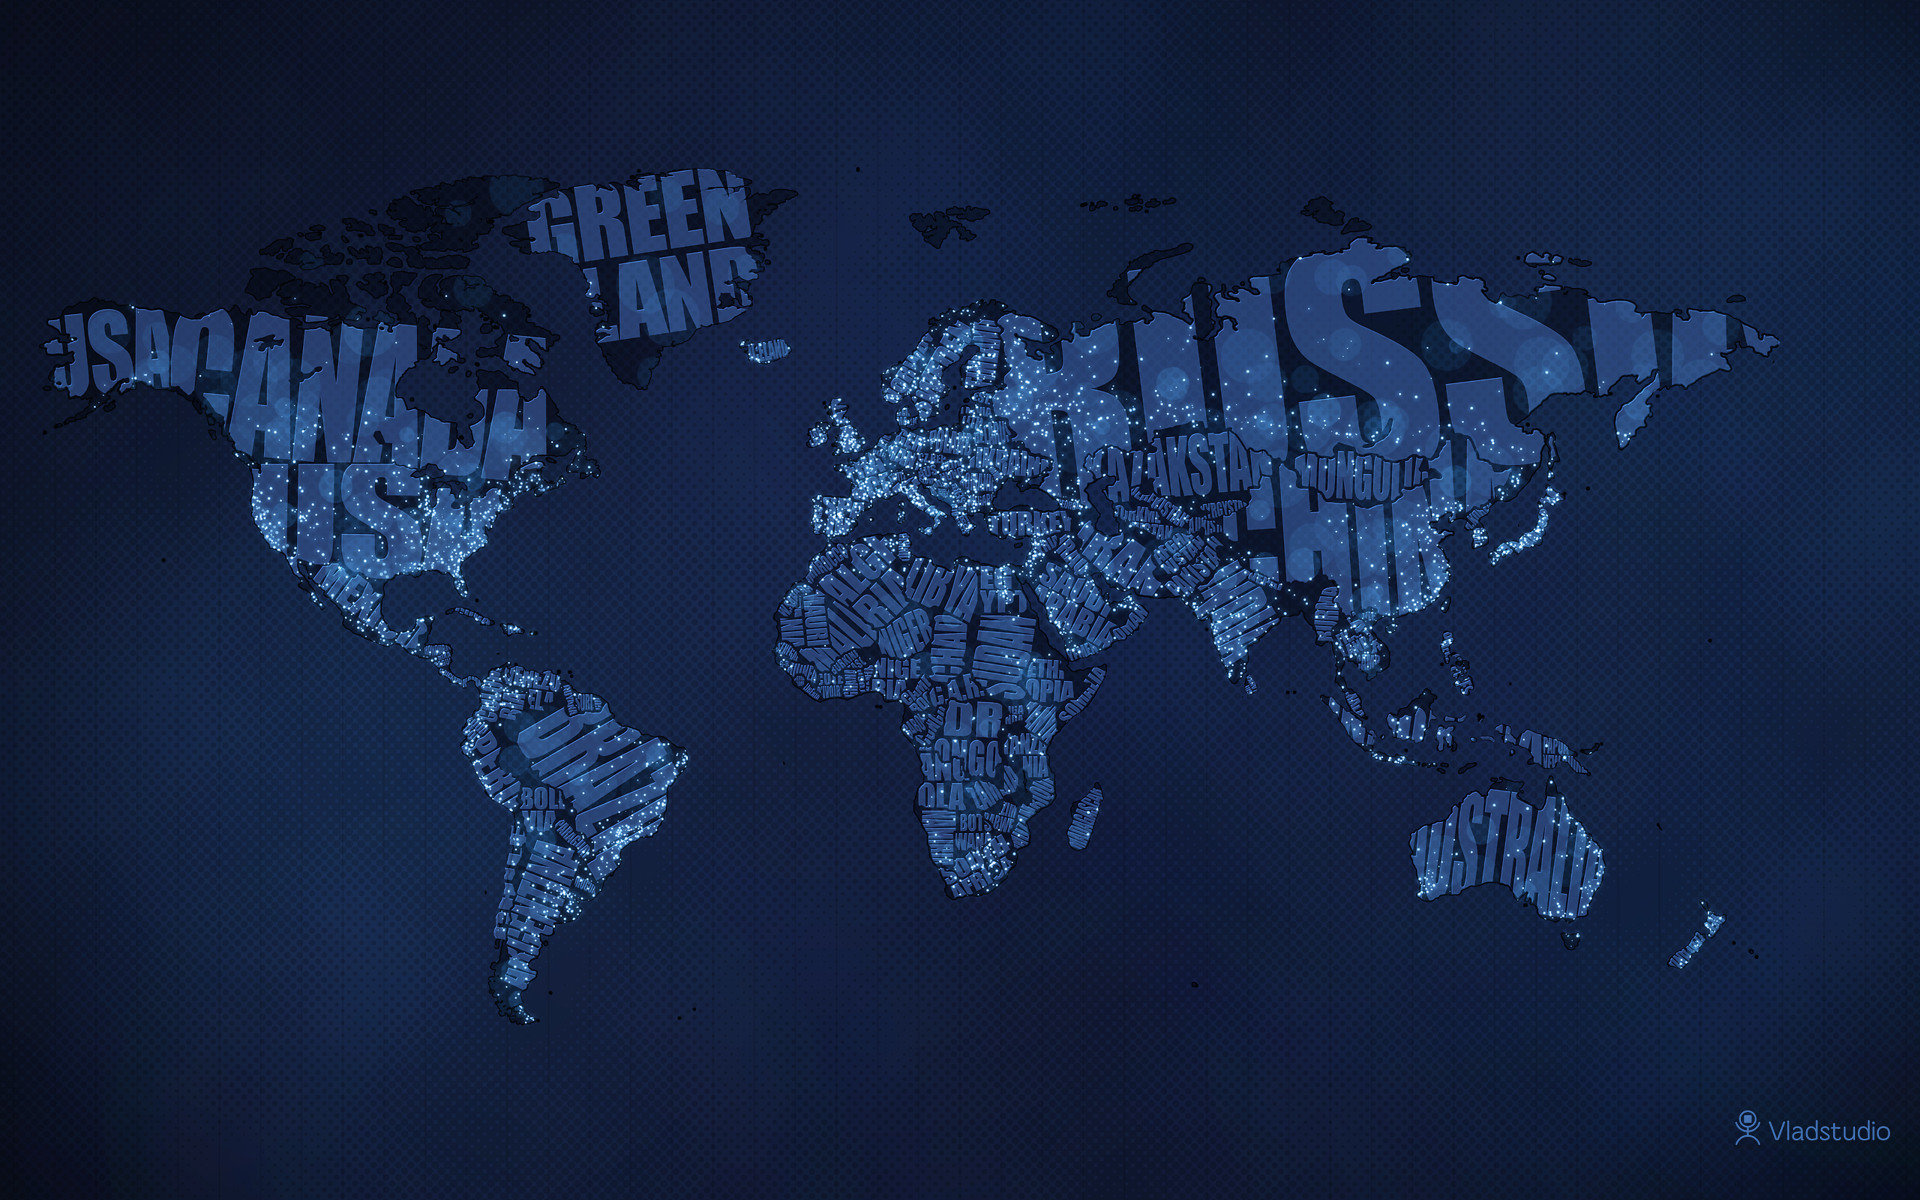 World map hd wallpaper wallpapersafari world map night hd wallpaper theme bin customization hd 1920x1200 gumiabroncs Choice Image